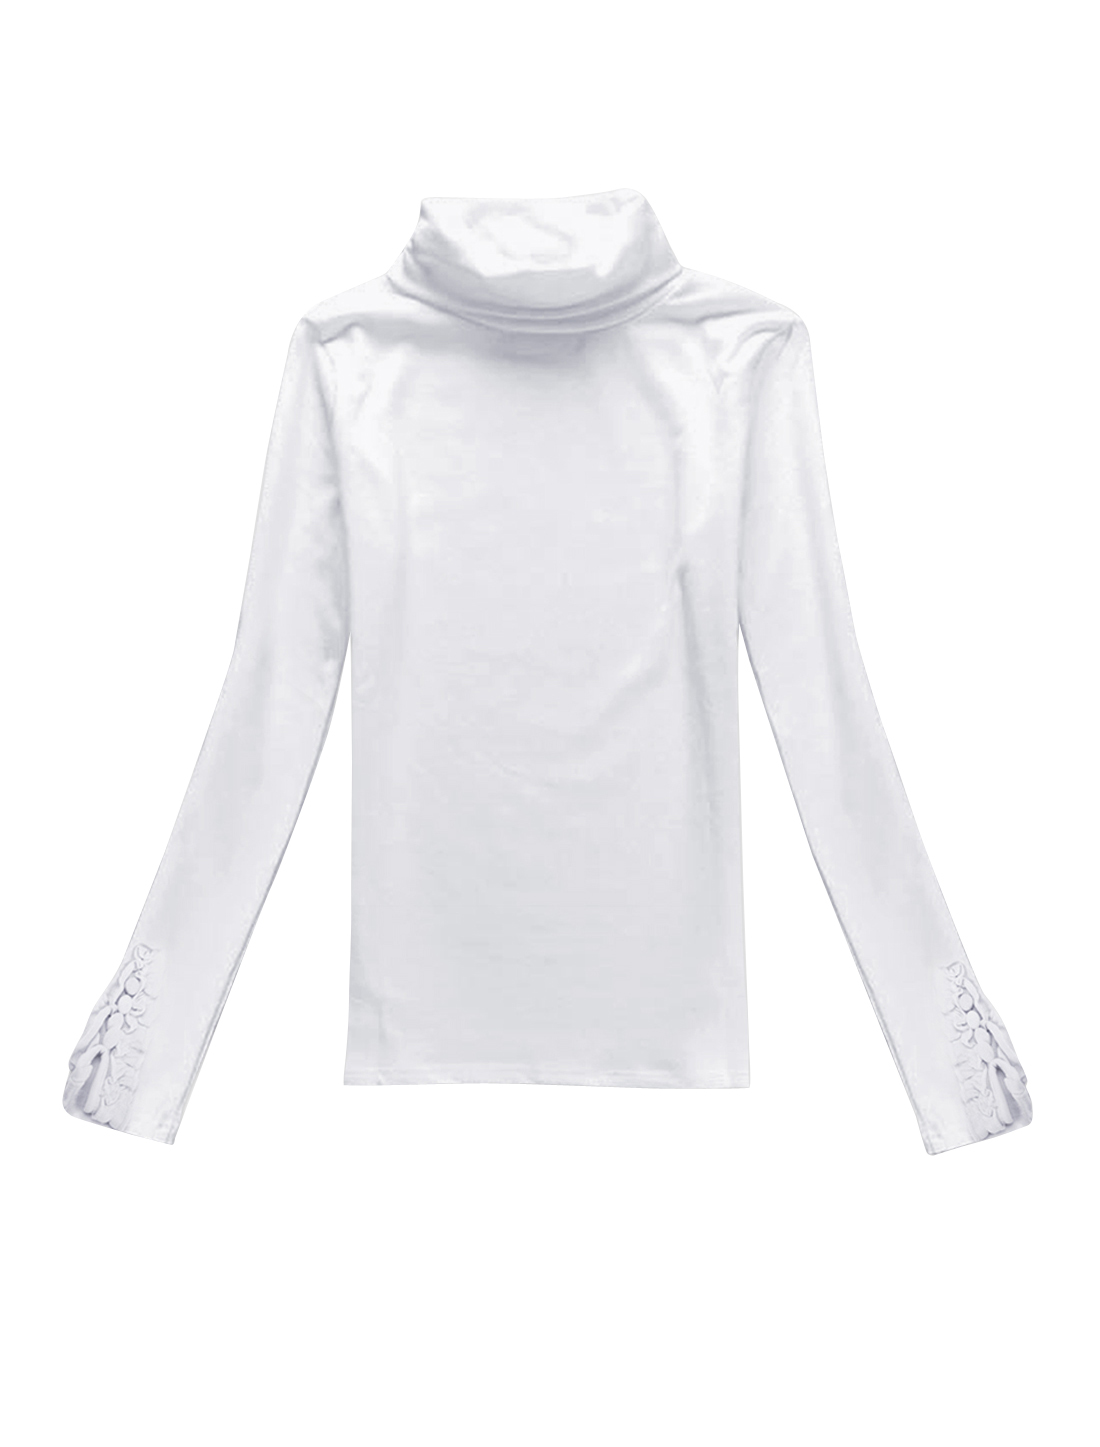 Woman Ruffled Cuffs Raglan Long Sleeves Shirt White XS